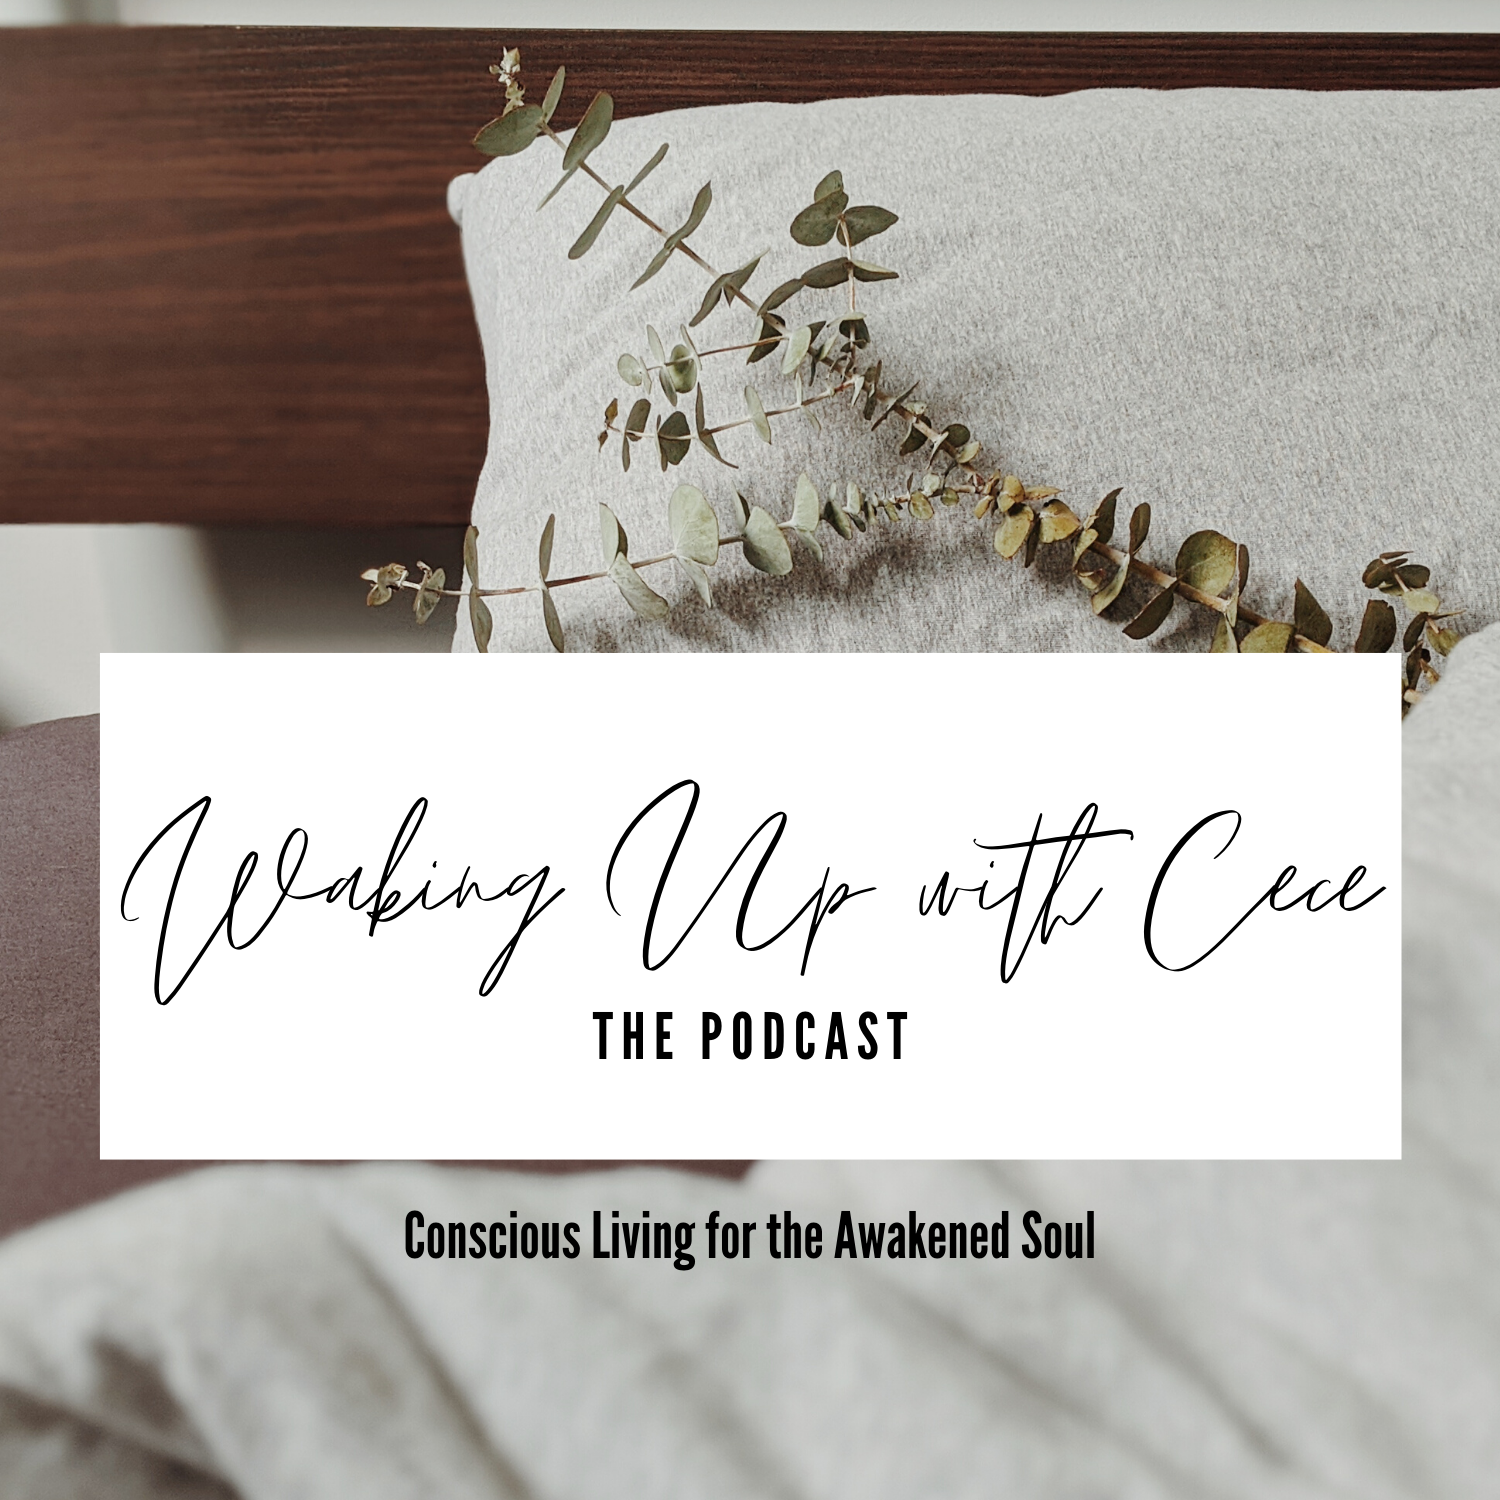 Waking Up with Cece the podcast conscious living for the awakened soul